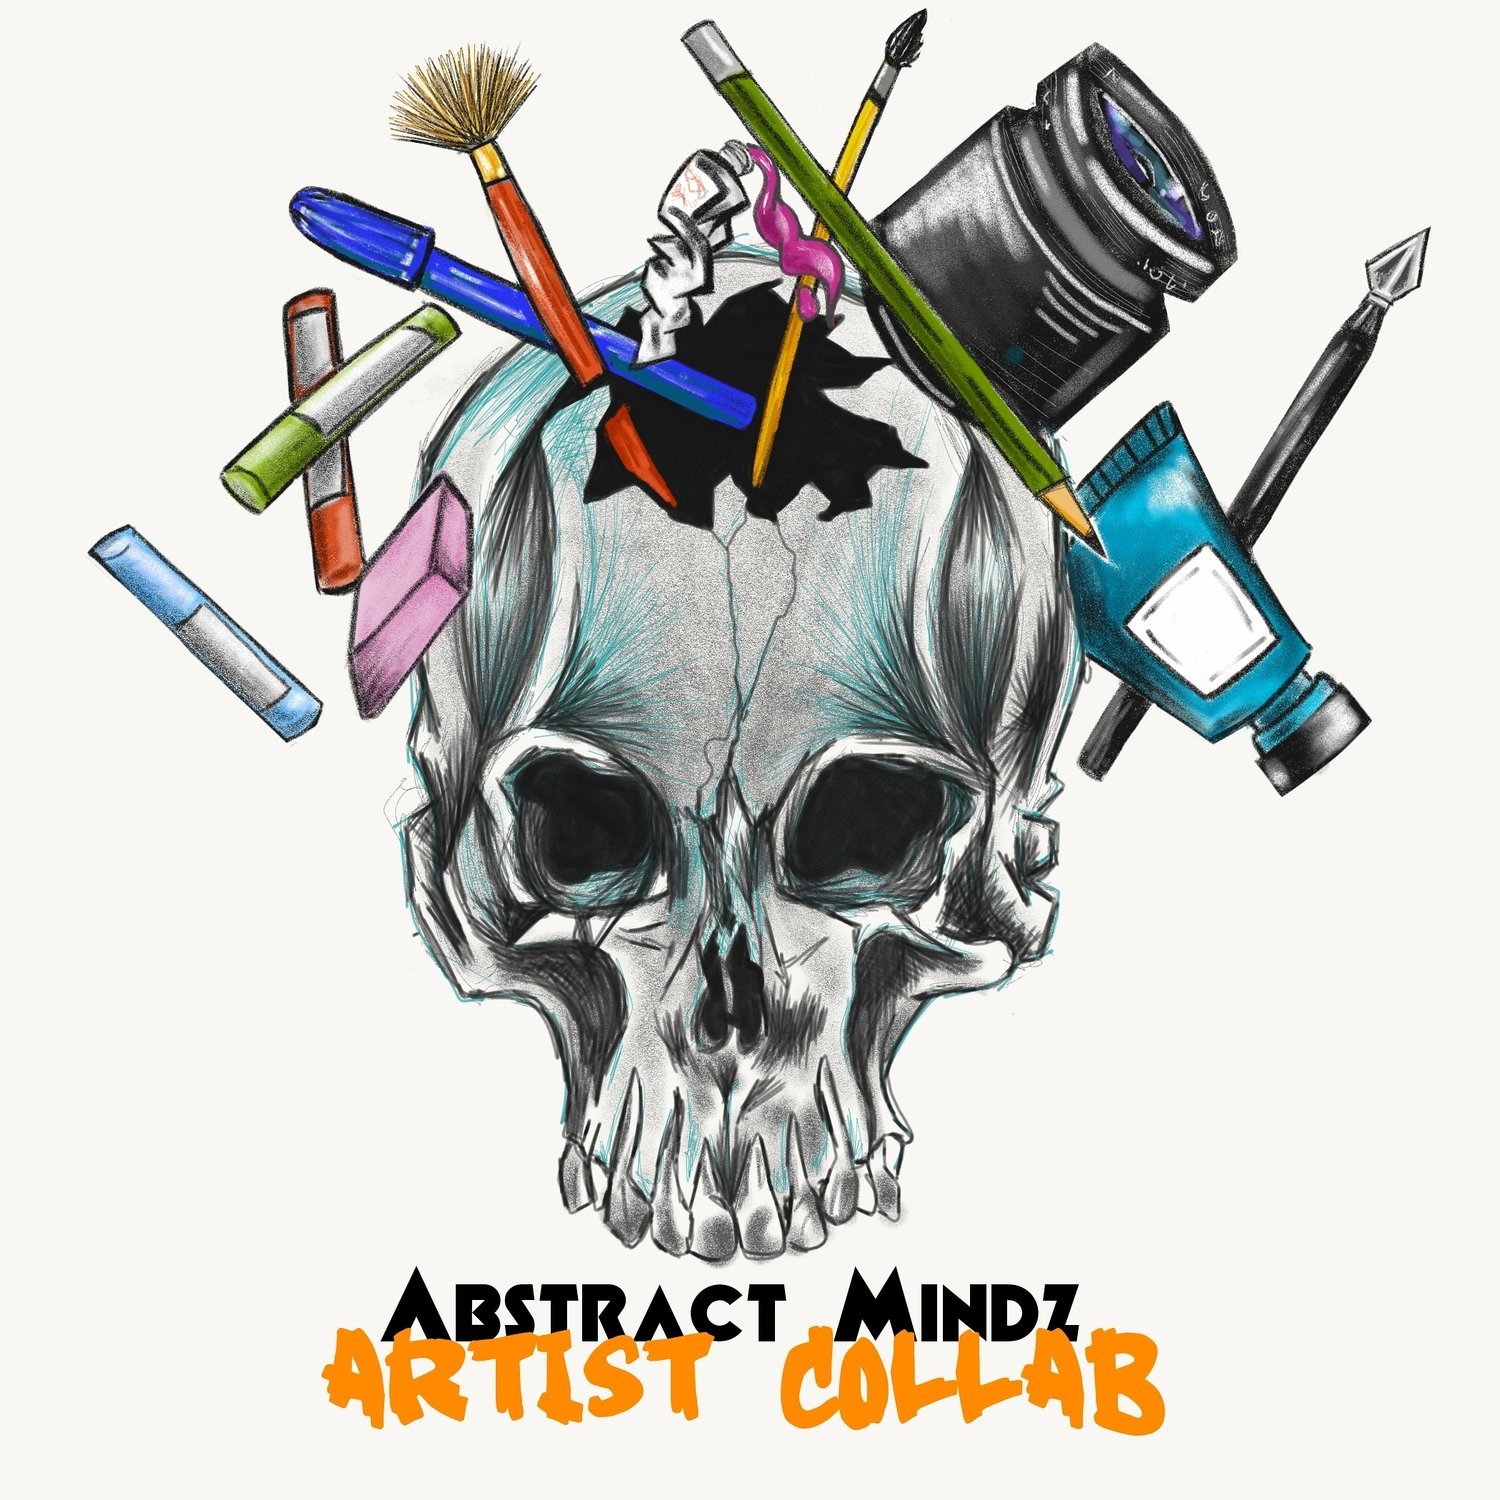 Abstract Mindz Artist Collaboration